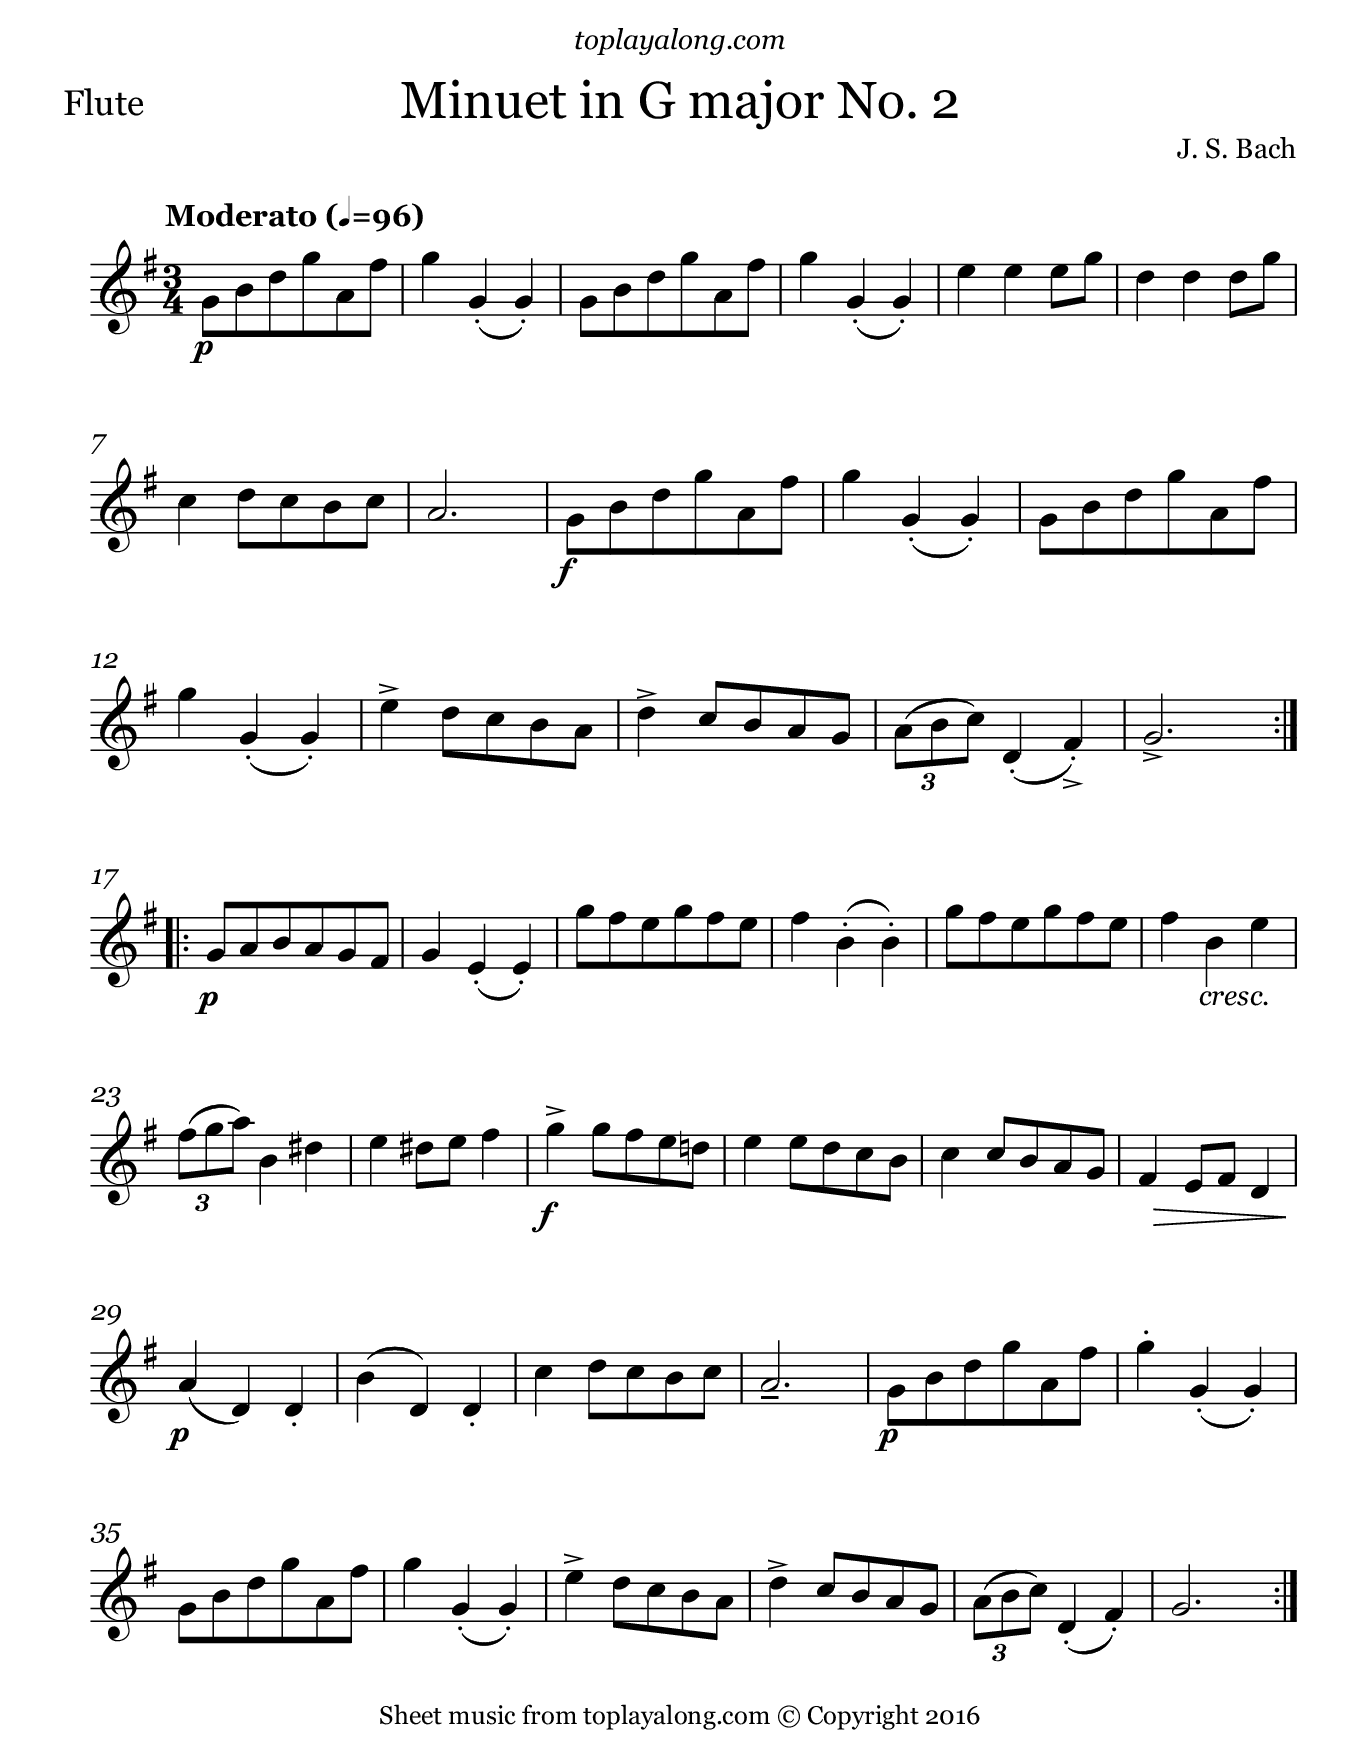 Minuet in G major No. 2 by J. S. Bach. Sheet music for Flute, page 1.